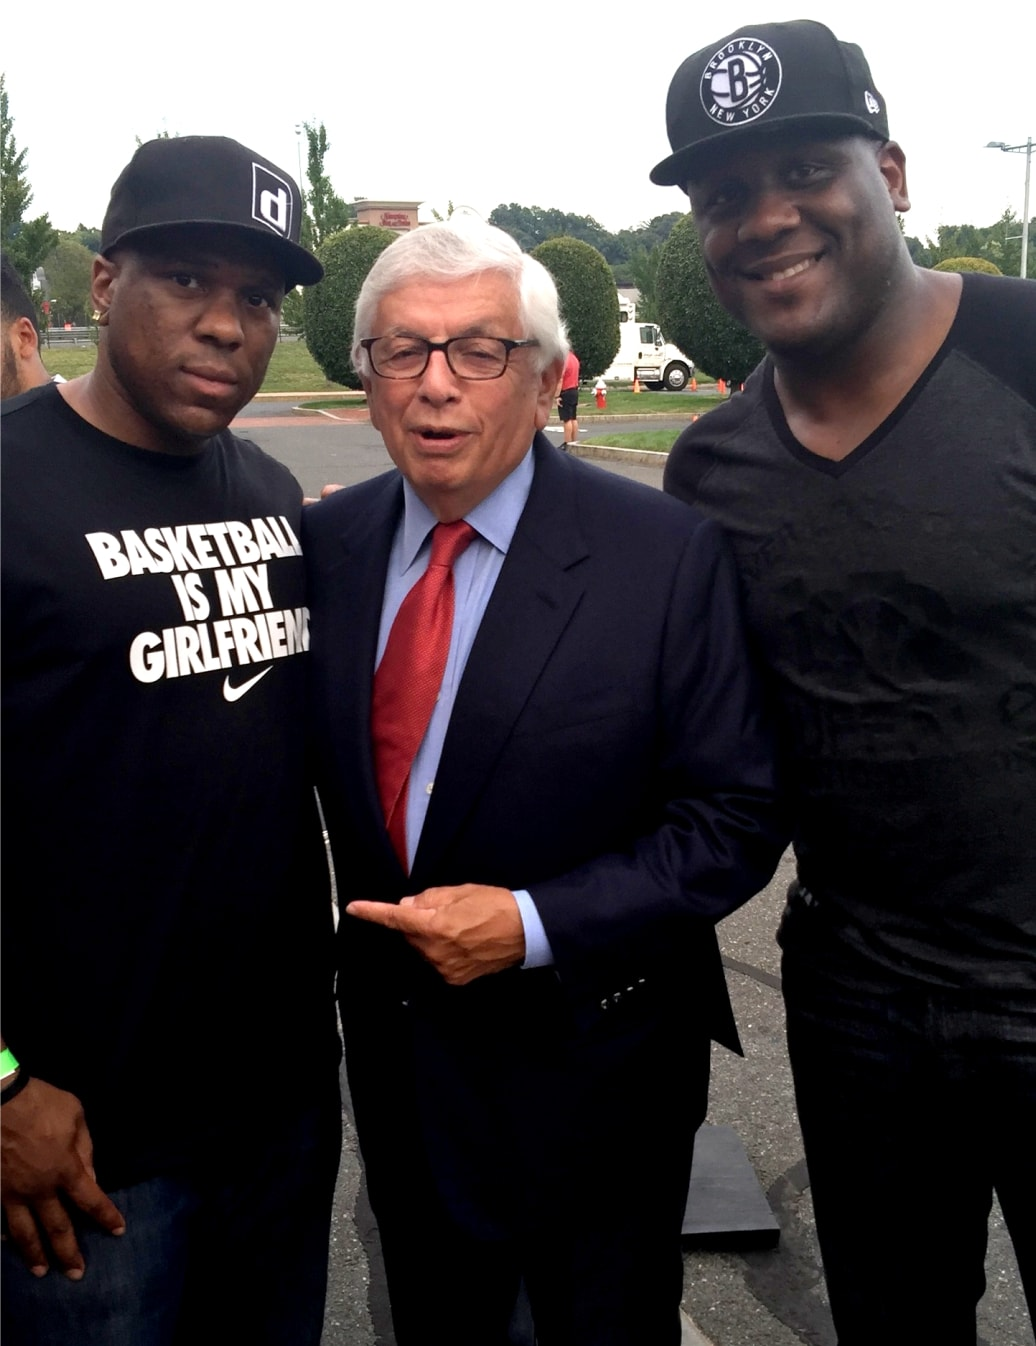 With the Former commissioner of the NBA, the great David Stern